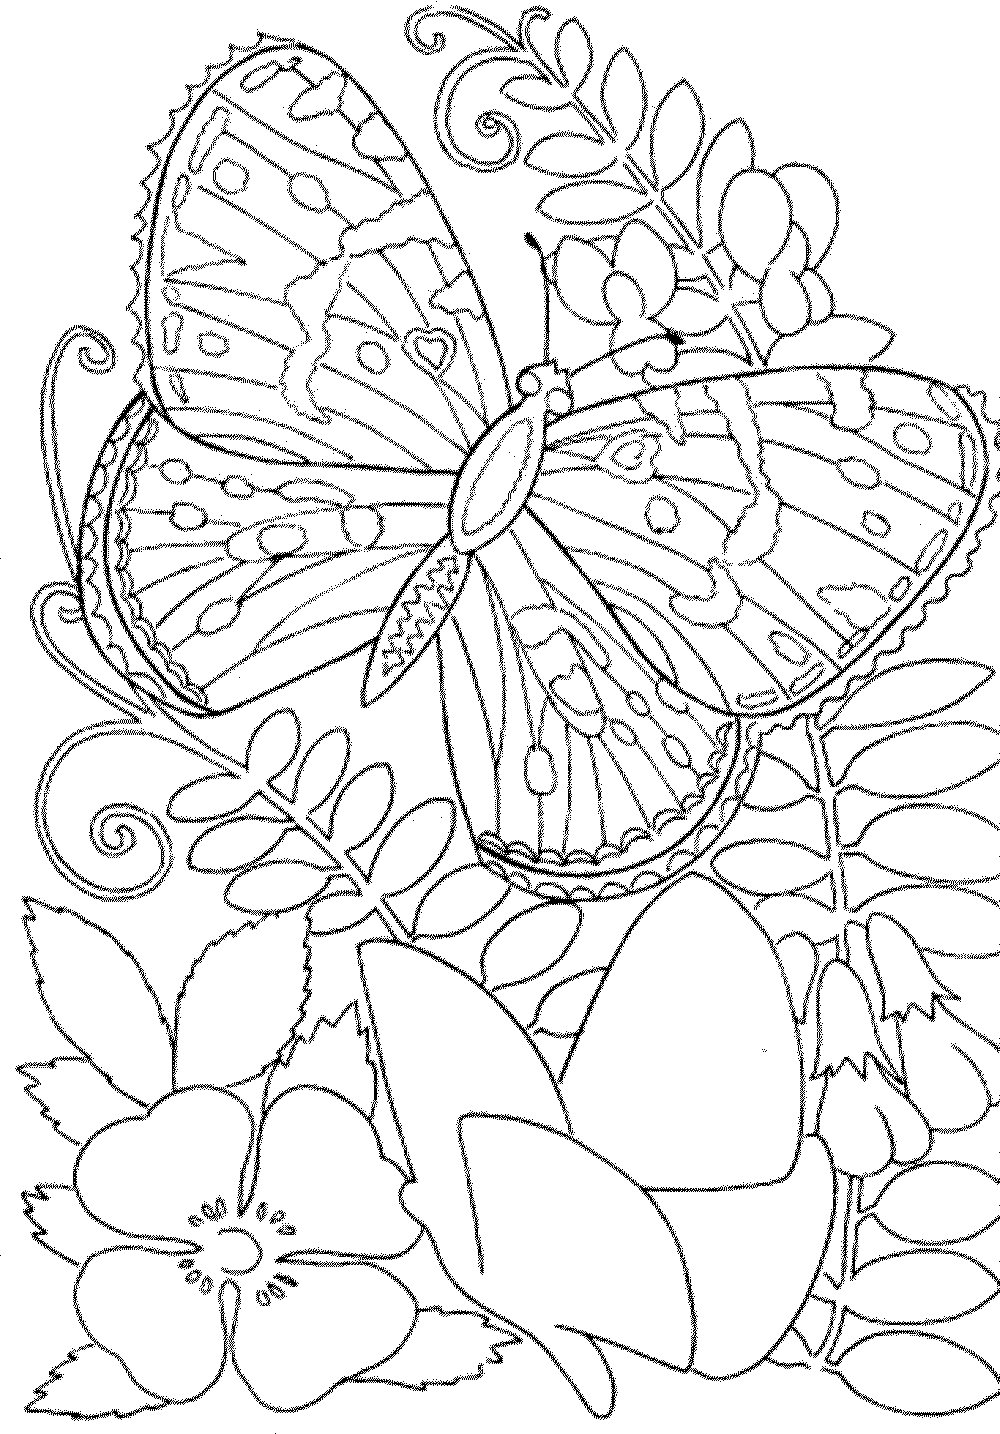 Printable coloring pages butterfly - Free Coloring Pages For Adults To Print